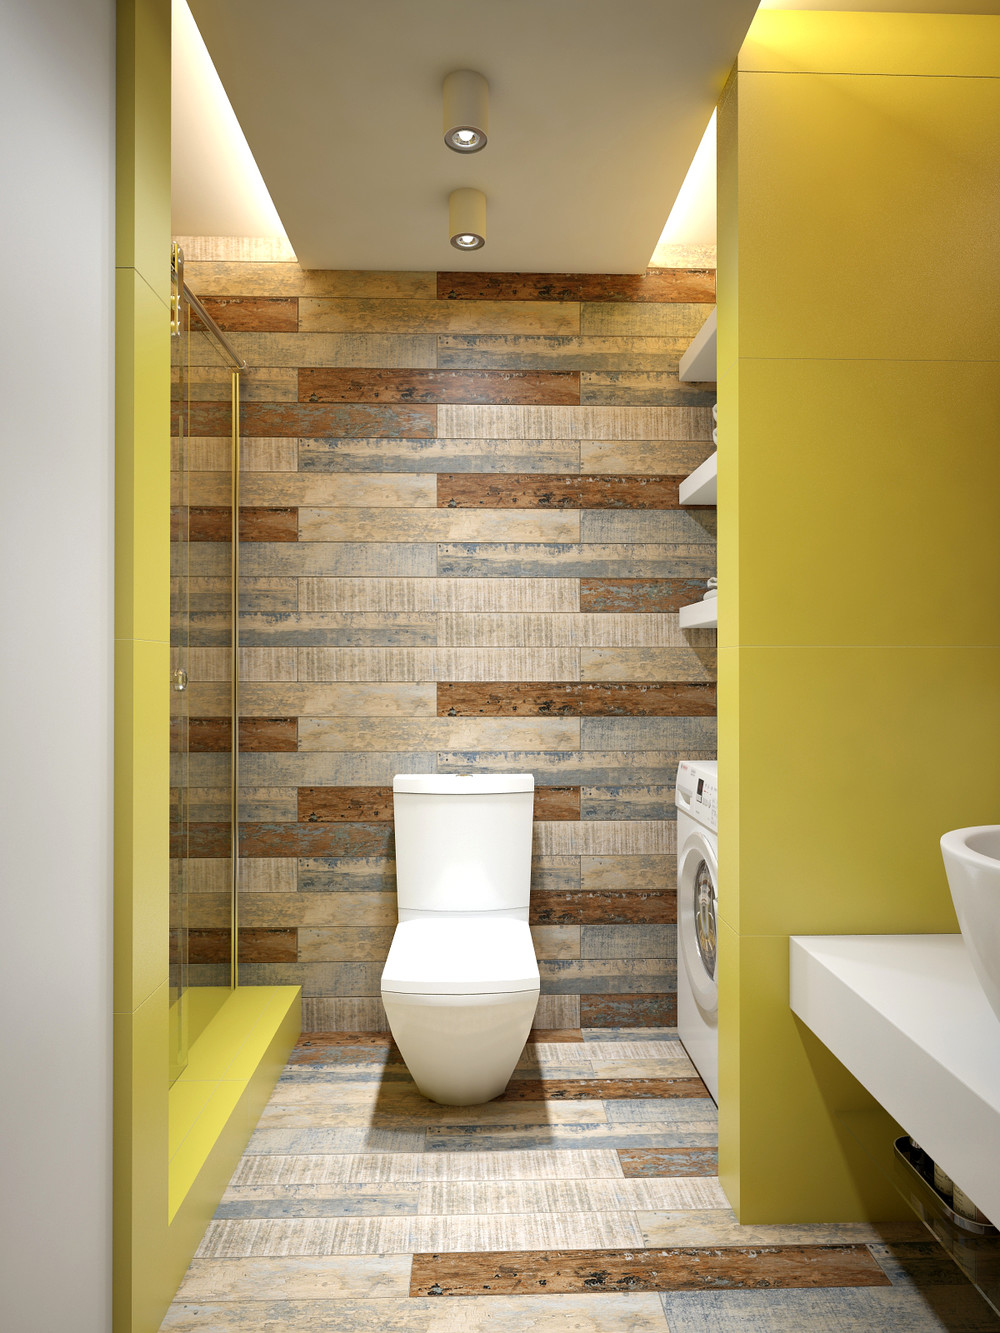 3 Open Studio Apartment Designs on Contemporary:kkgewzoz5M4= Small Bathroom Ideas  id=37971